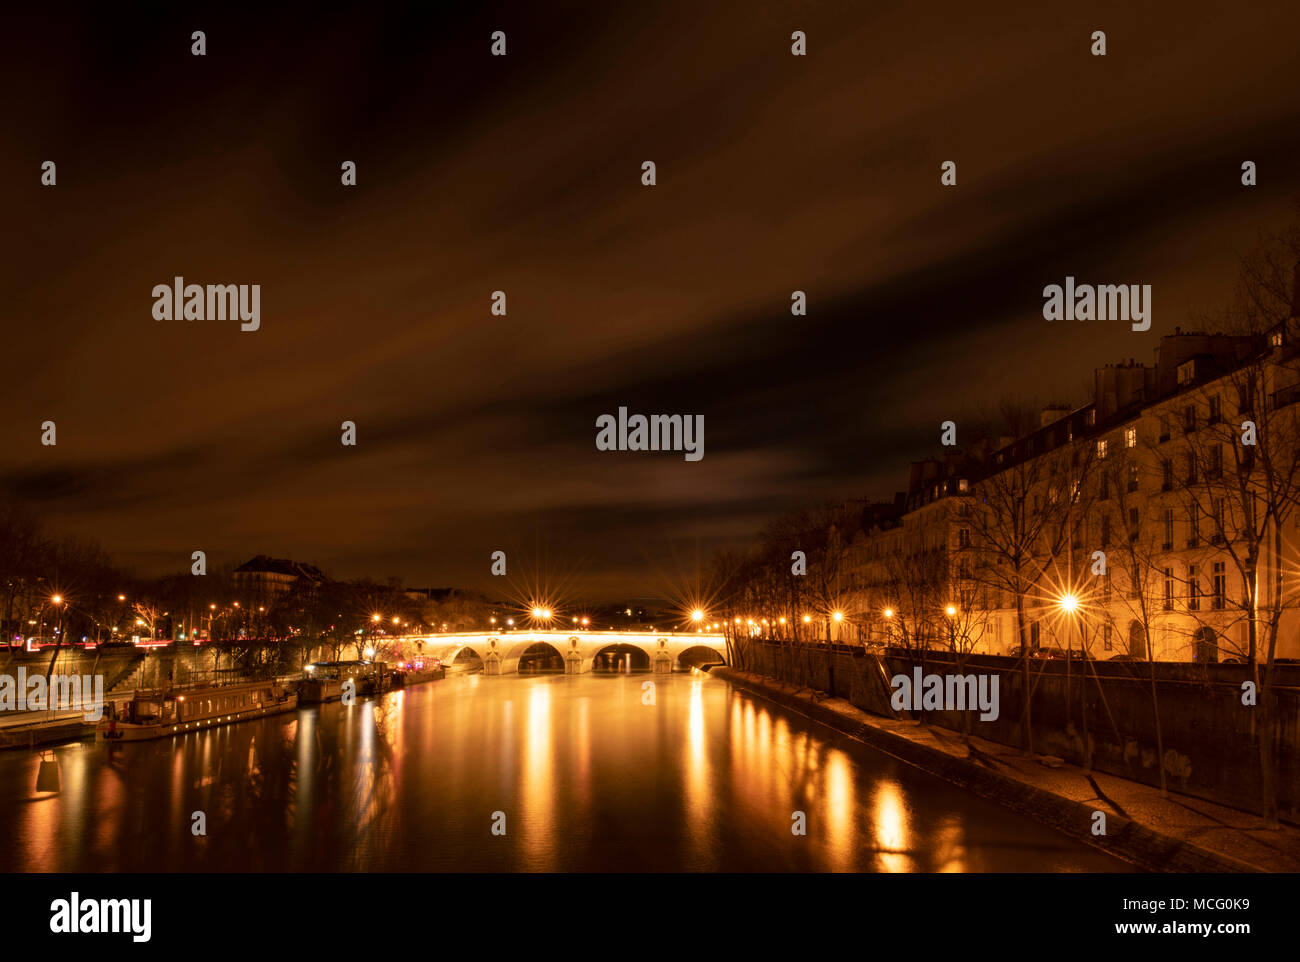 A night time view of the Pont Marie, the Il St Louis and reflections on the Seine. Paris, France, Europe - Stock Image